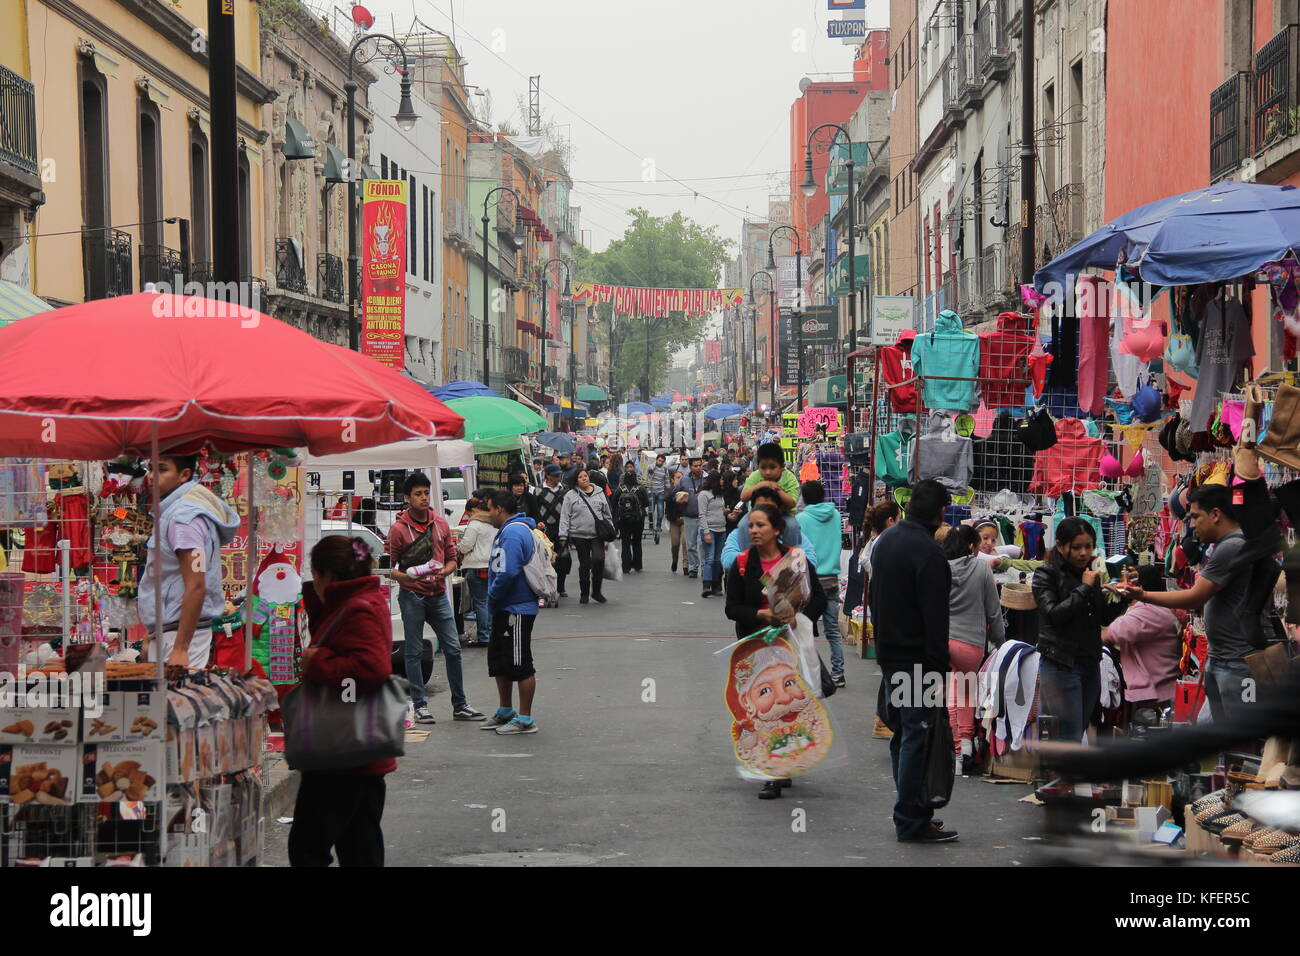 Mexican market in CDMX. - Stock Image